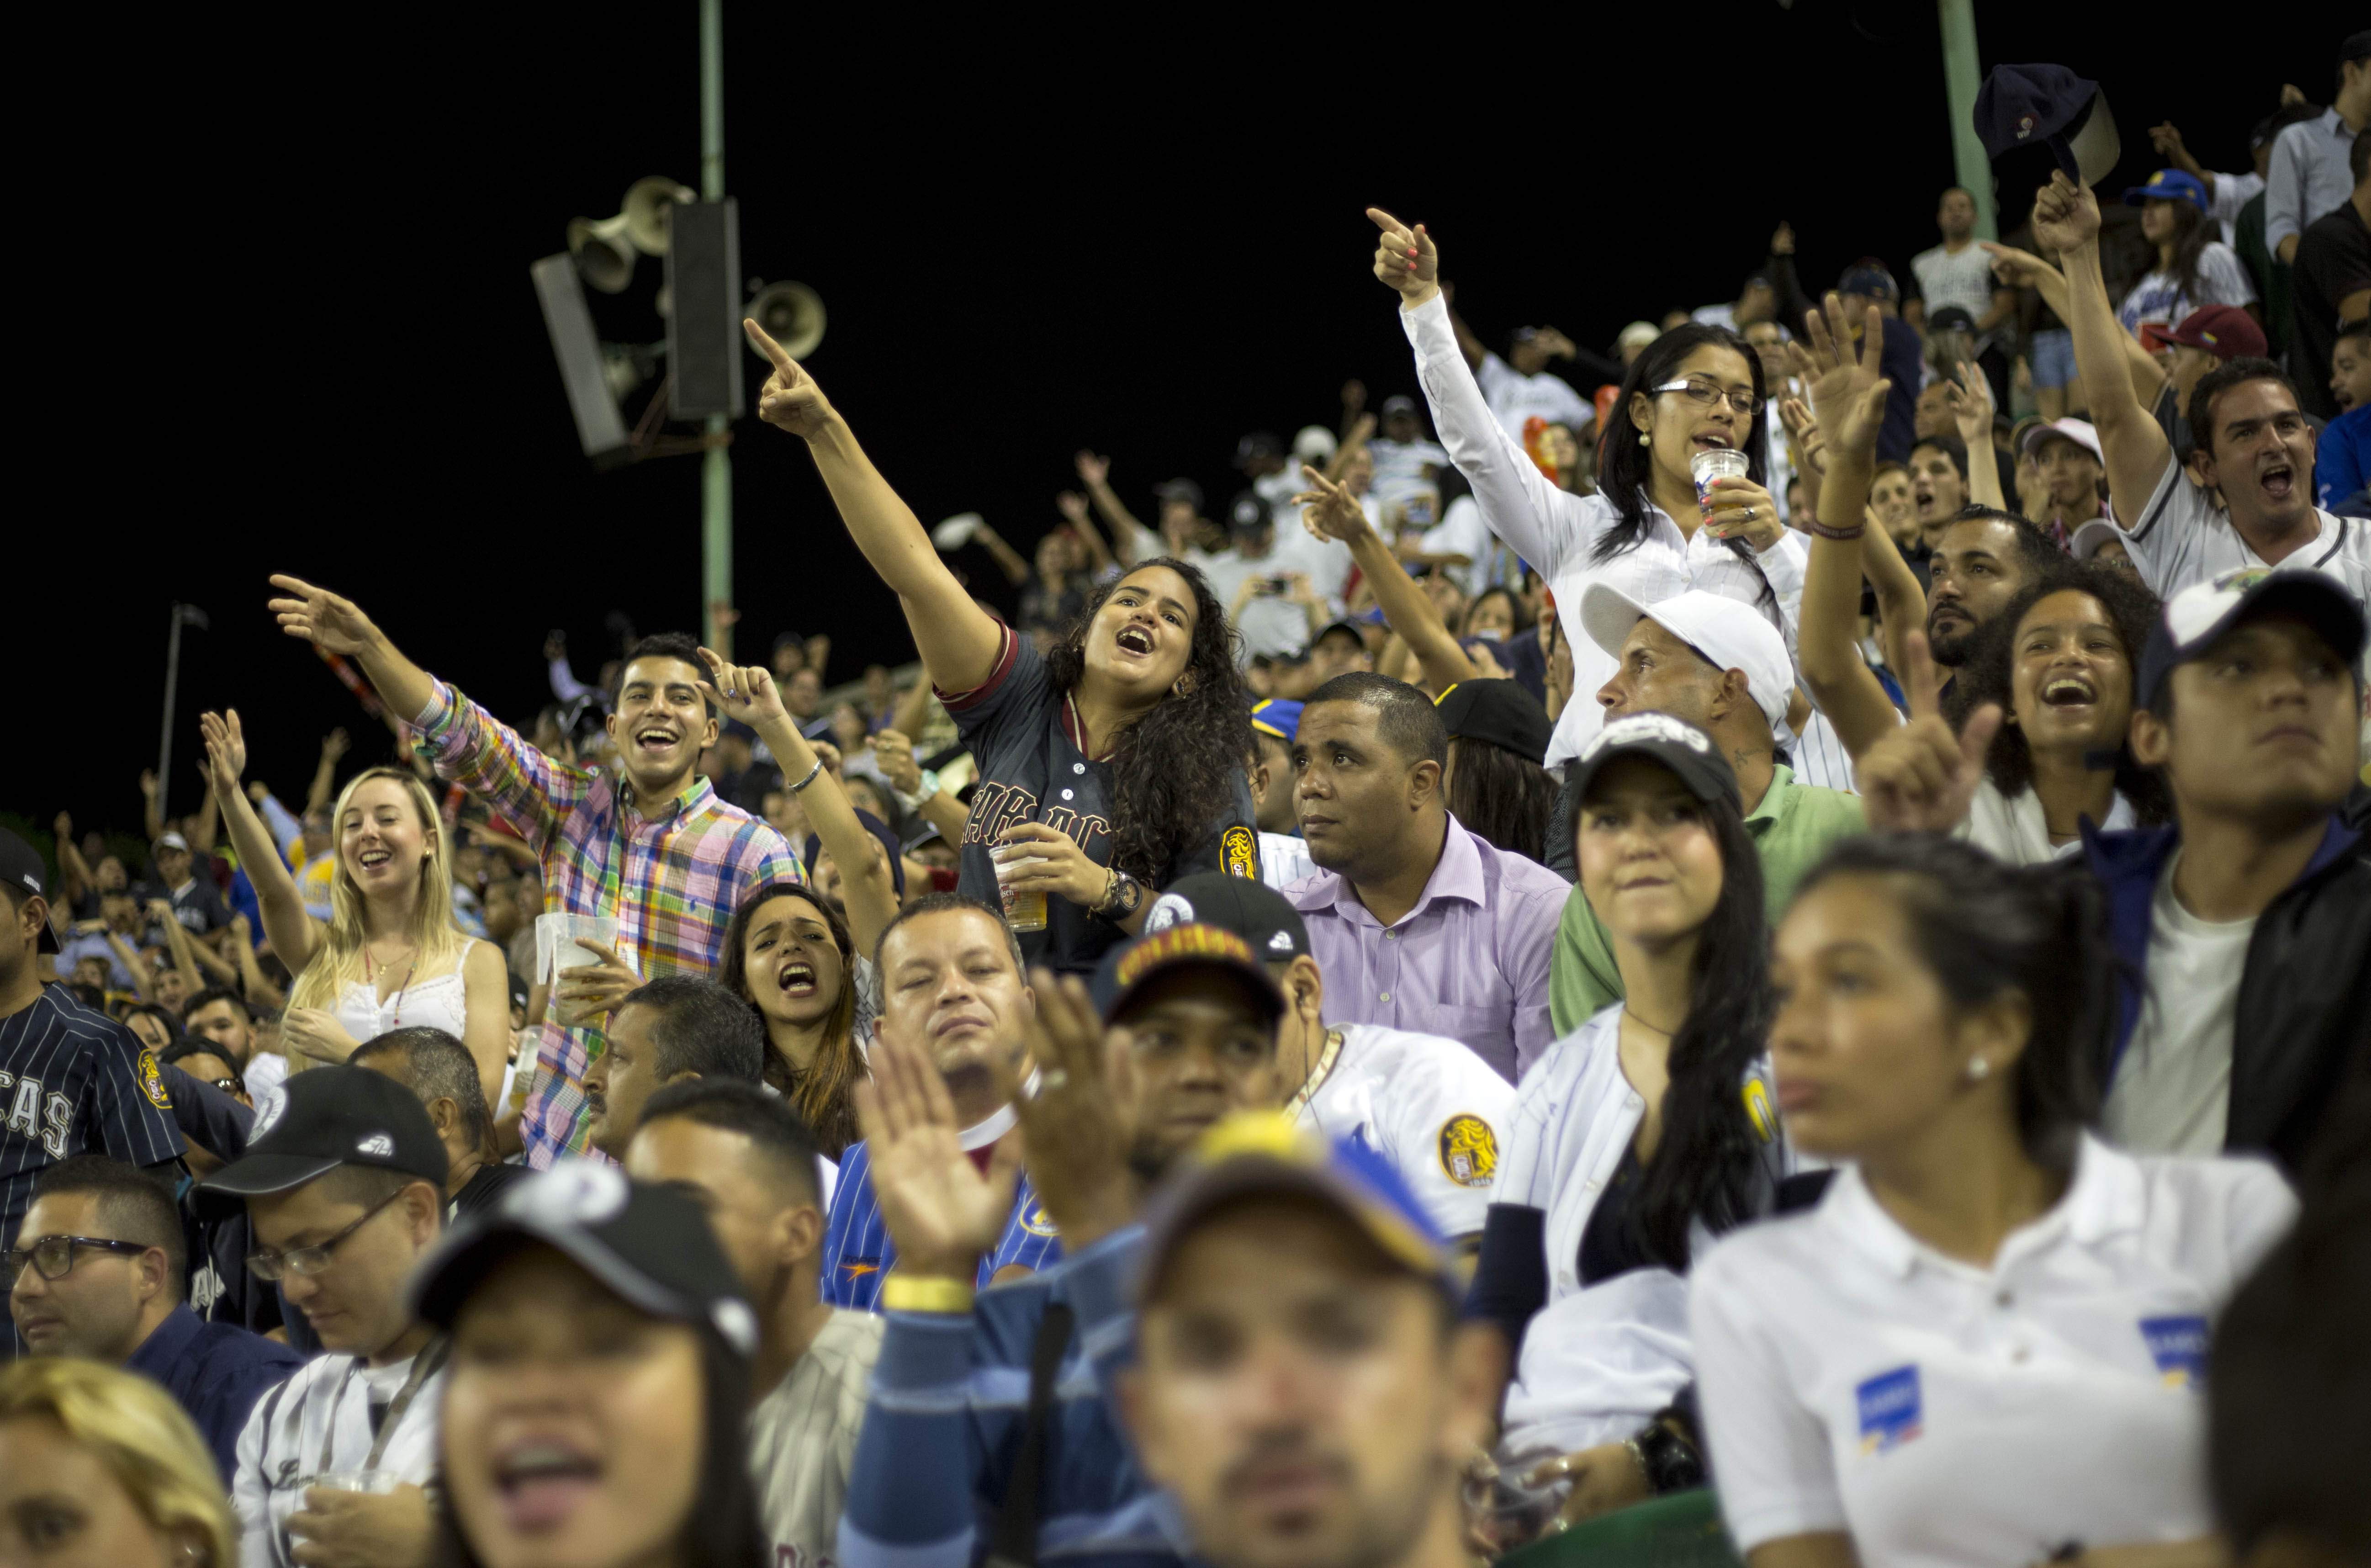 While most South Americans prefer soccer, Venezuela is crazy about baseball — even with games becoming more expensive to attend. These fans watch a game between the Leones de Caracas and the Navegantes del Magallanes in Caracas, Oct. 27, 2015.